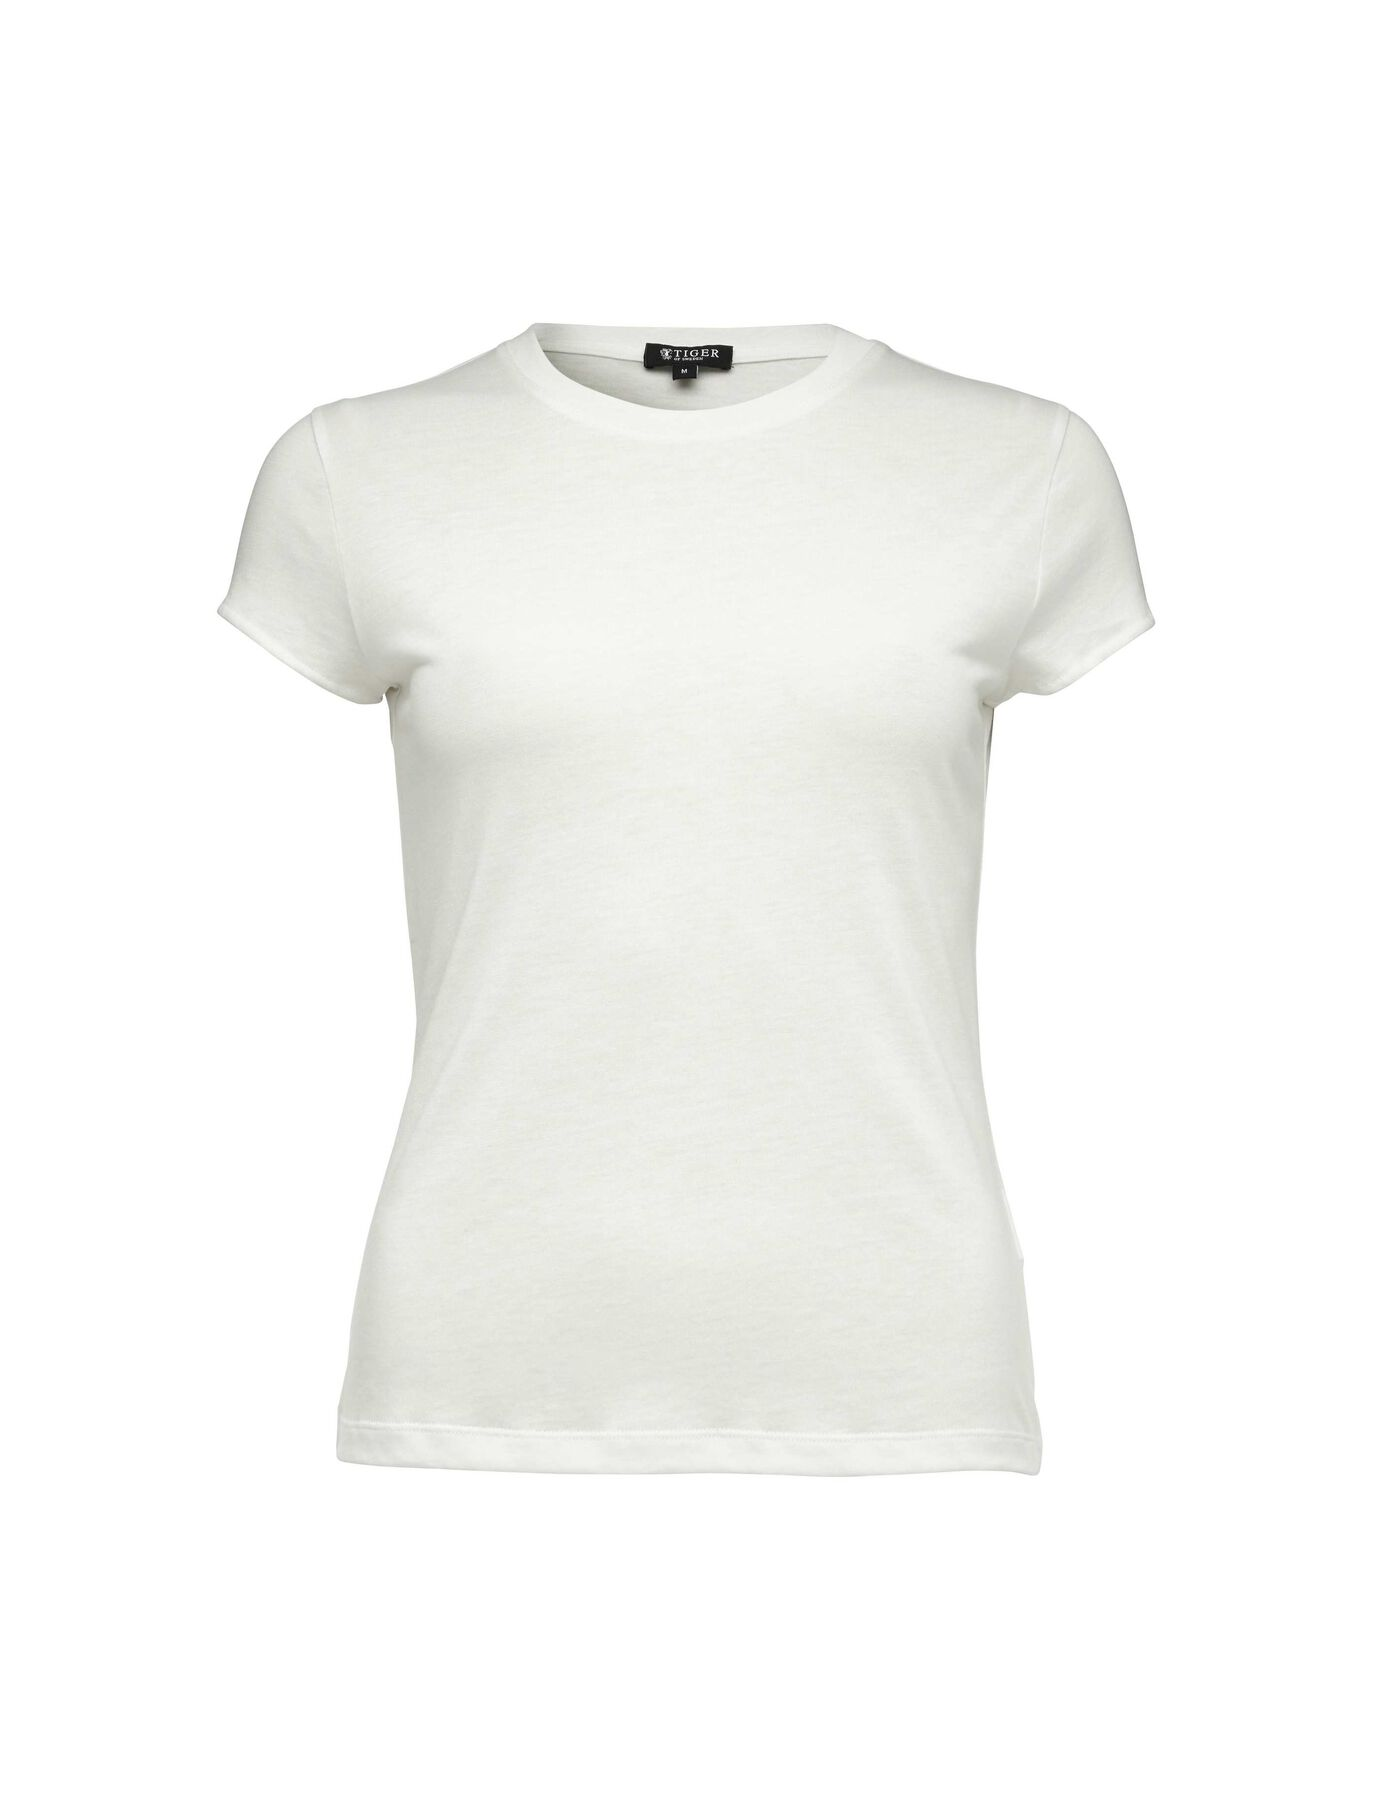 Lone t-shirt in Star White from Tiger of Sweden